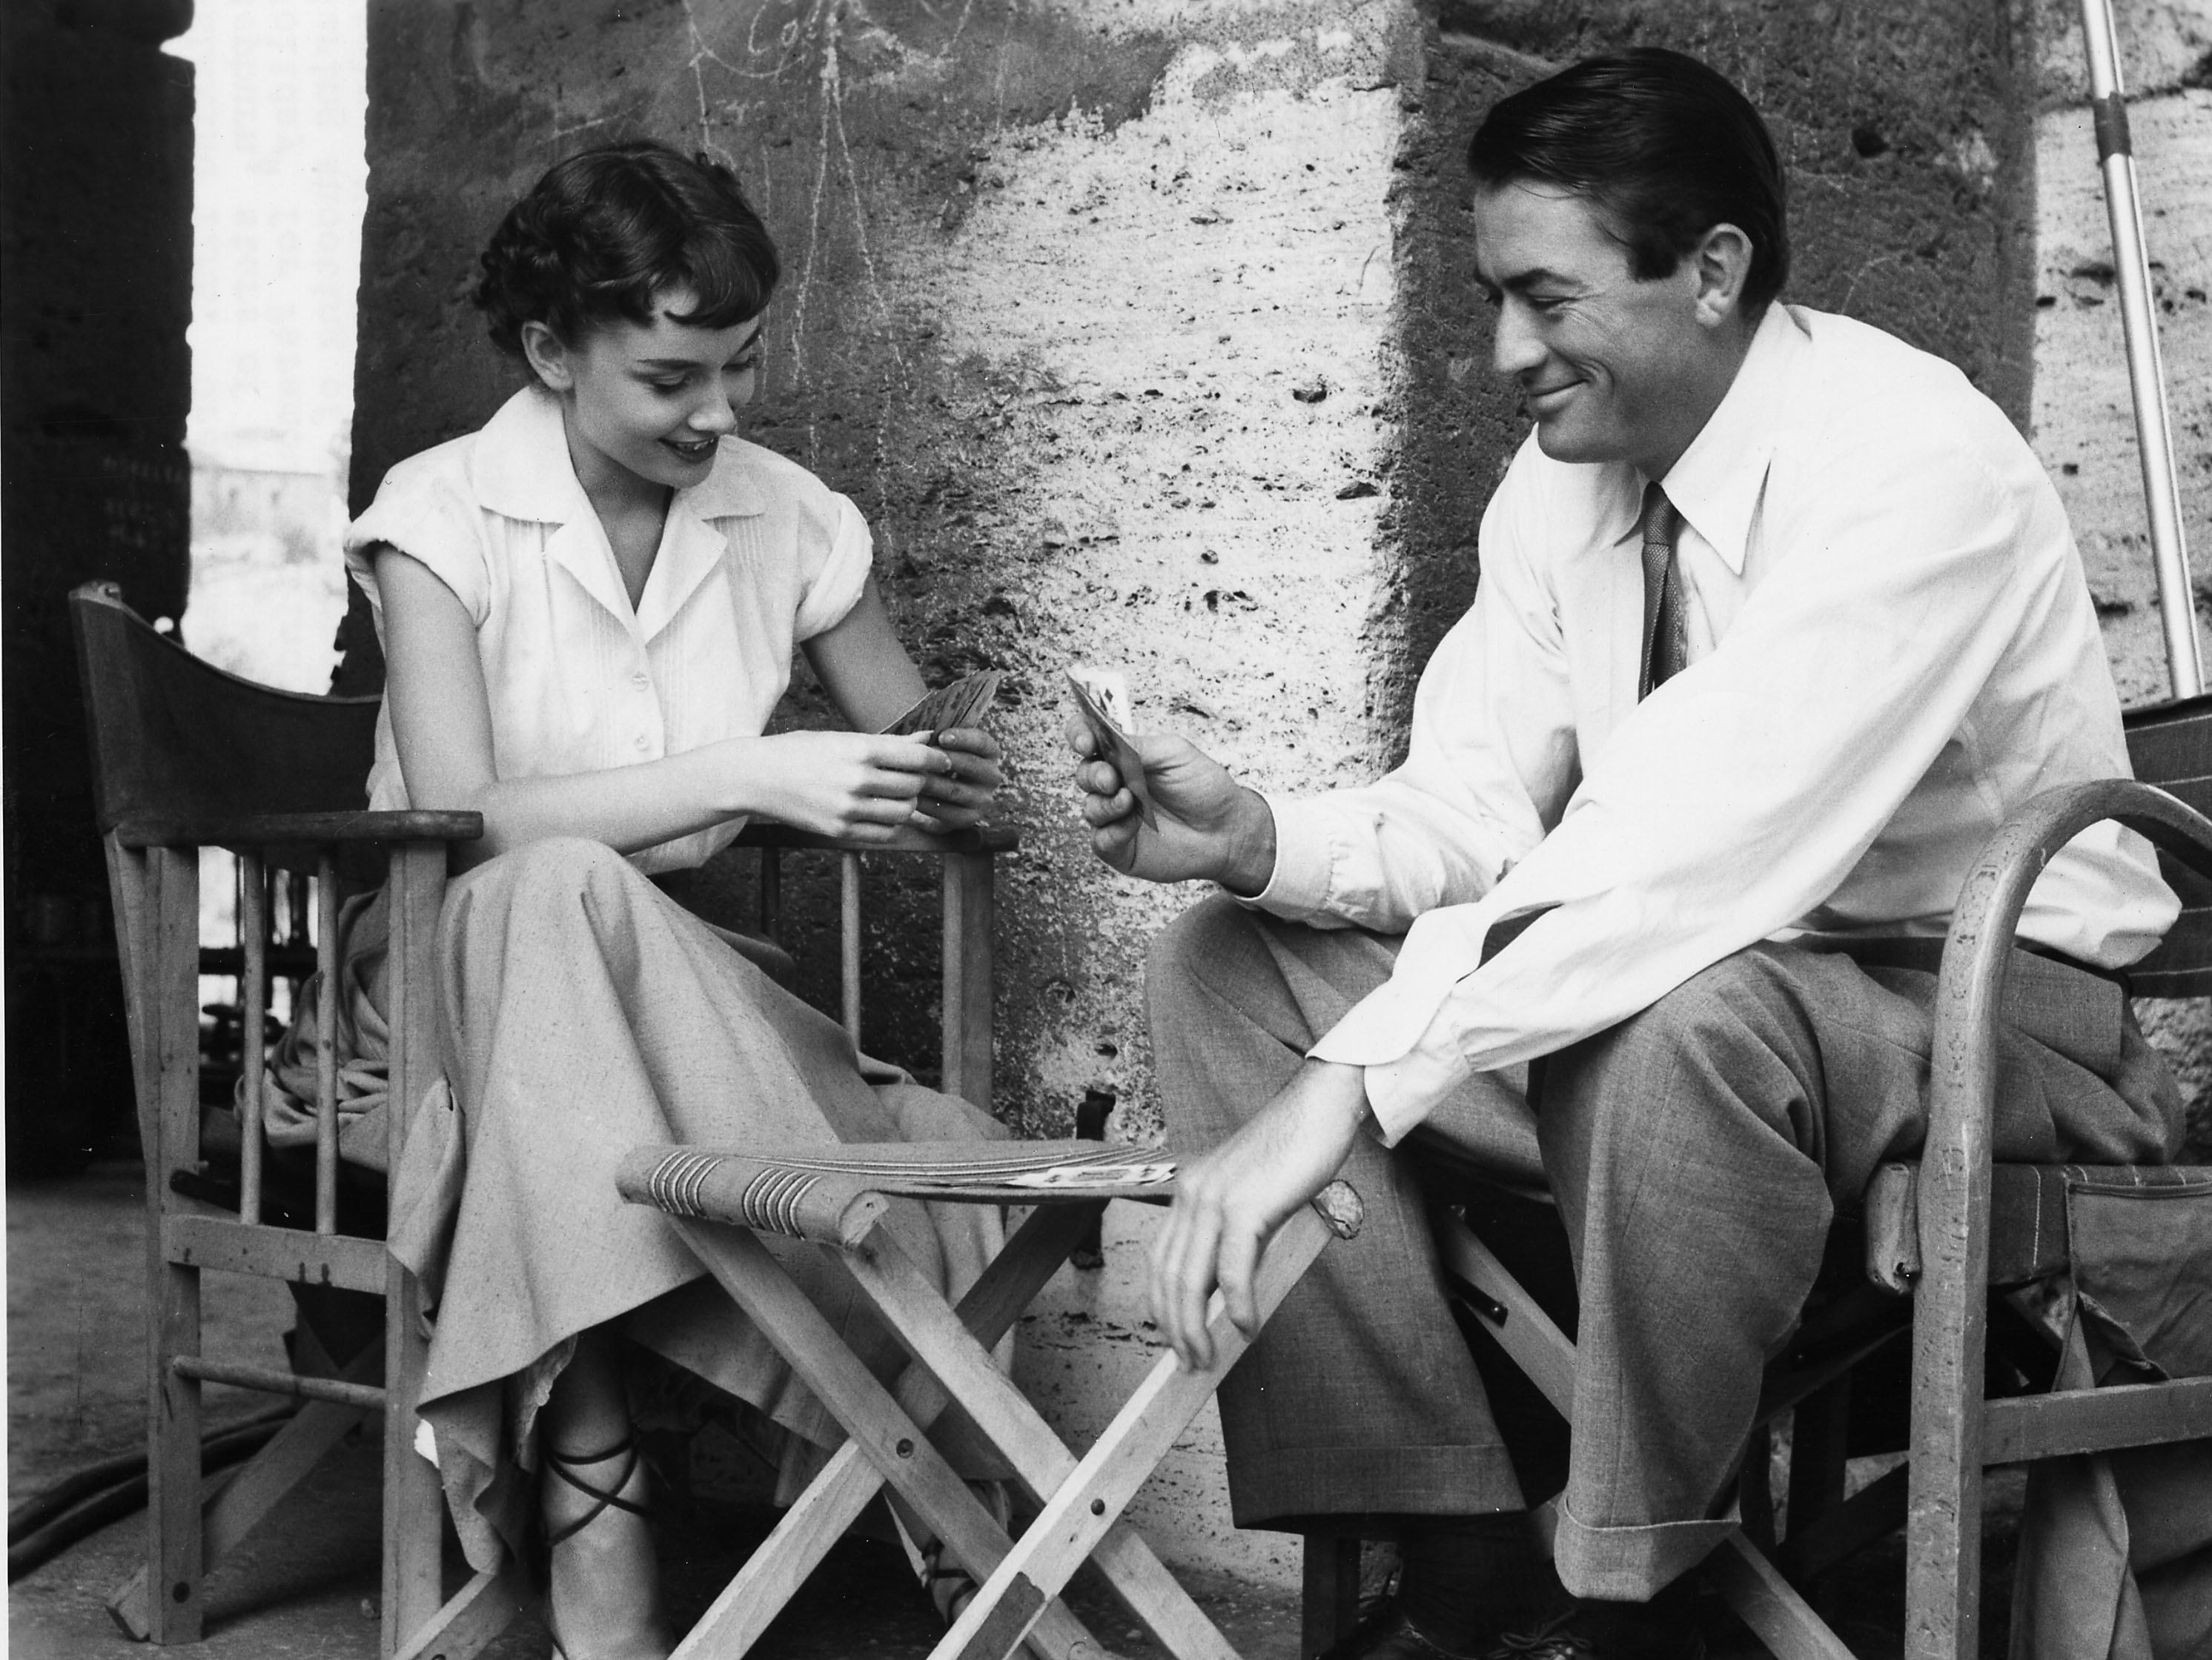 A Card Game with Audrey Hepburn and Gregory Peck